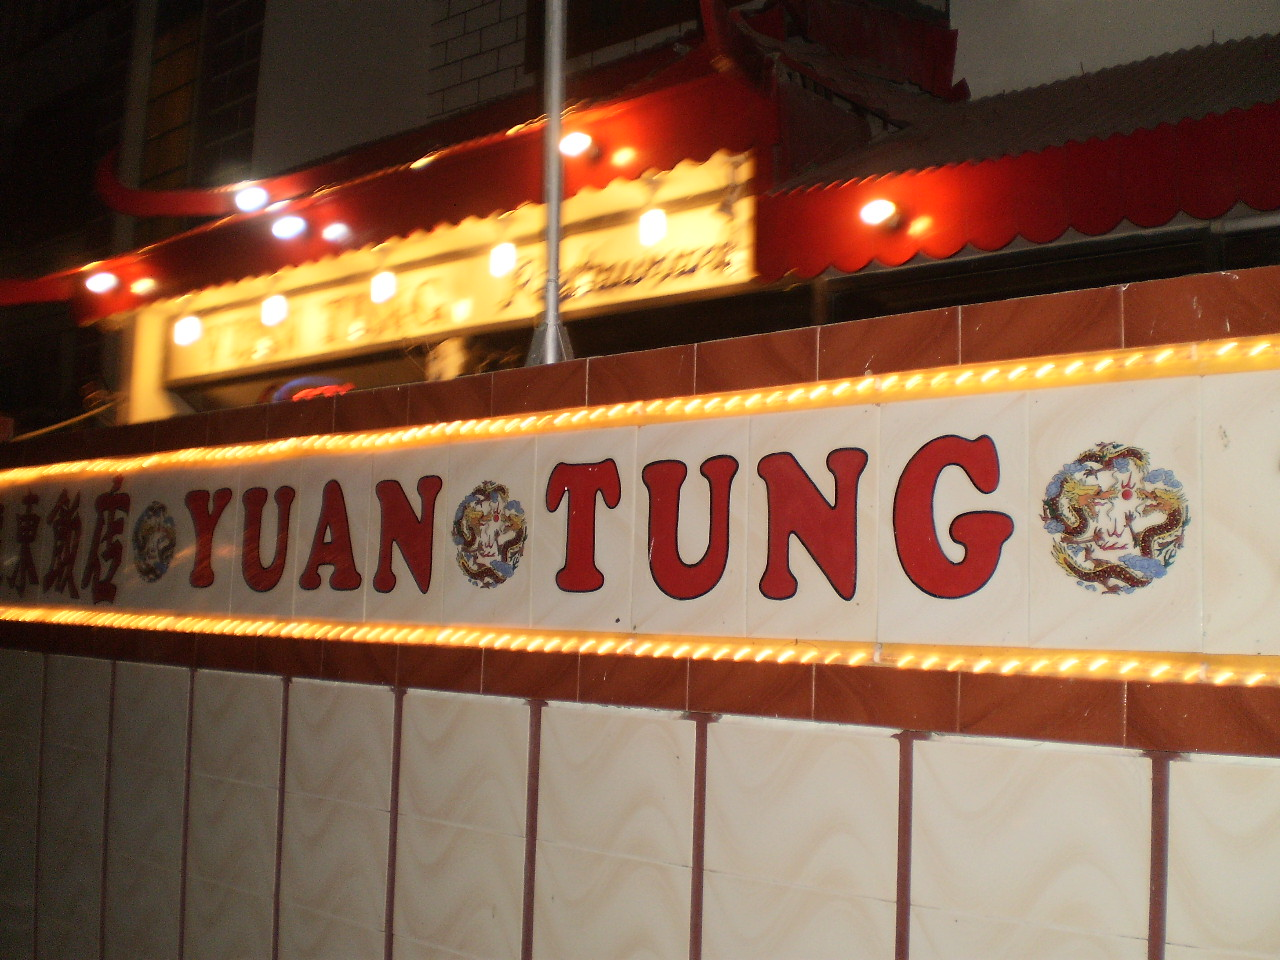 I Suppose The Real Authentic Chinese Restaurants Also Print Their Names In Native Language